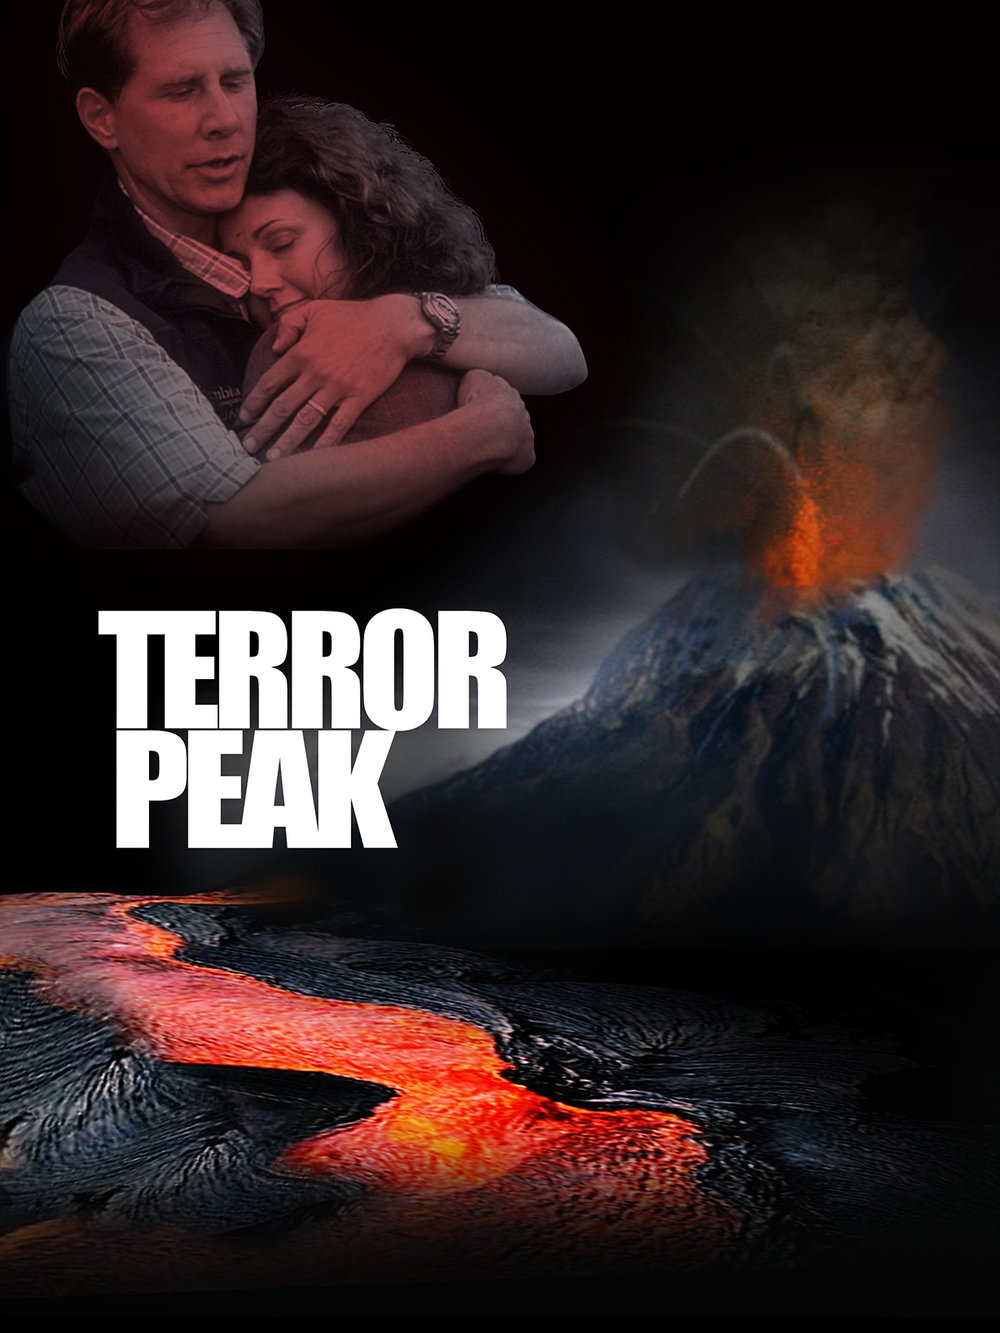 Here-TerrorPeak-Full-Image-en-US.jpg